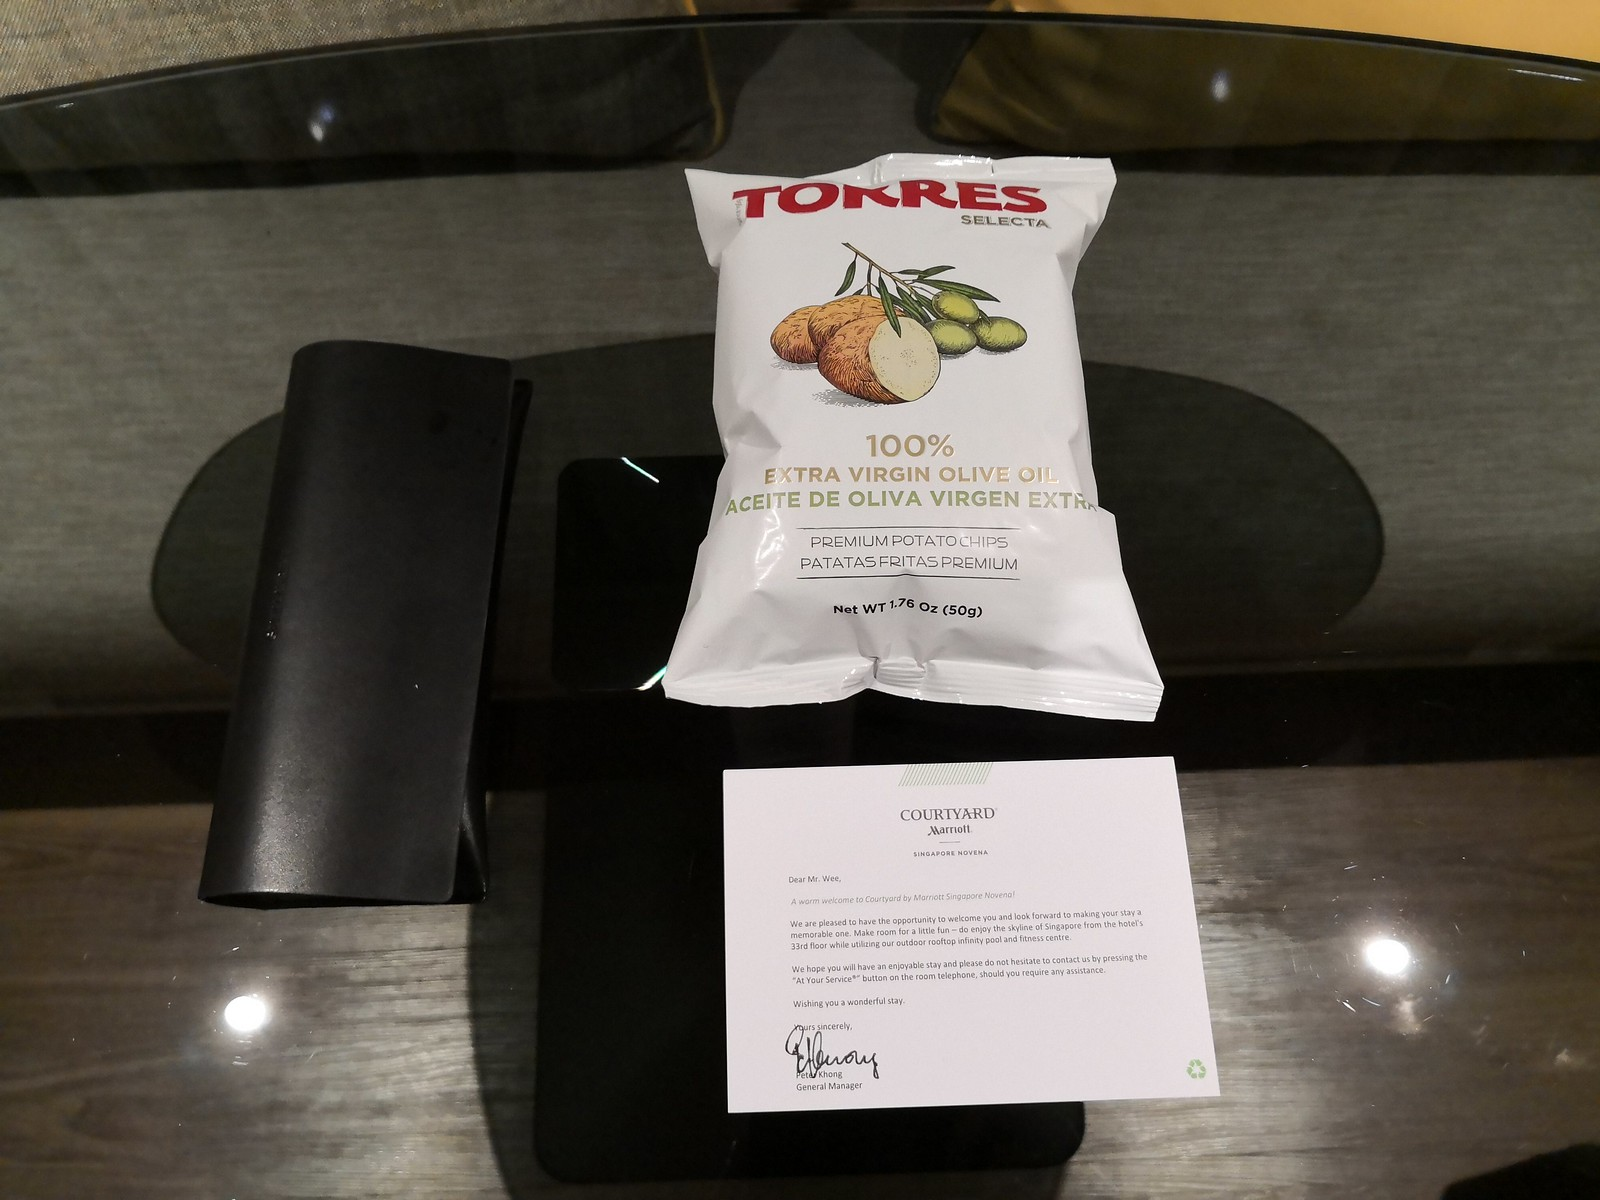 Torres chips welcome amenity